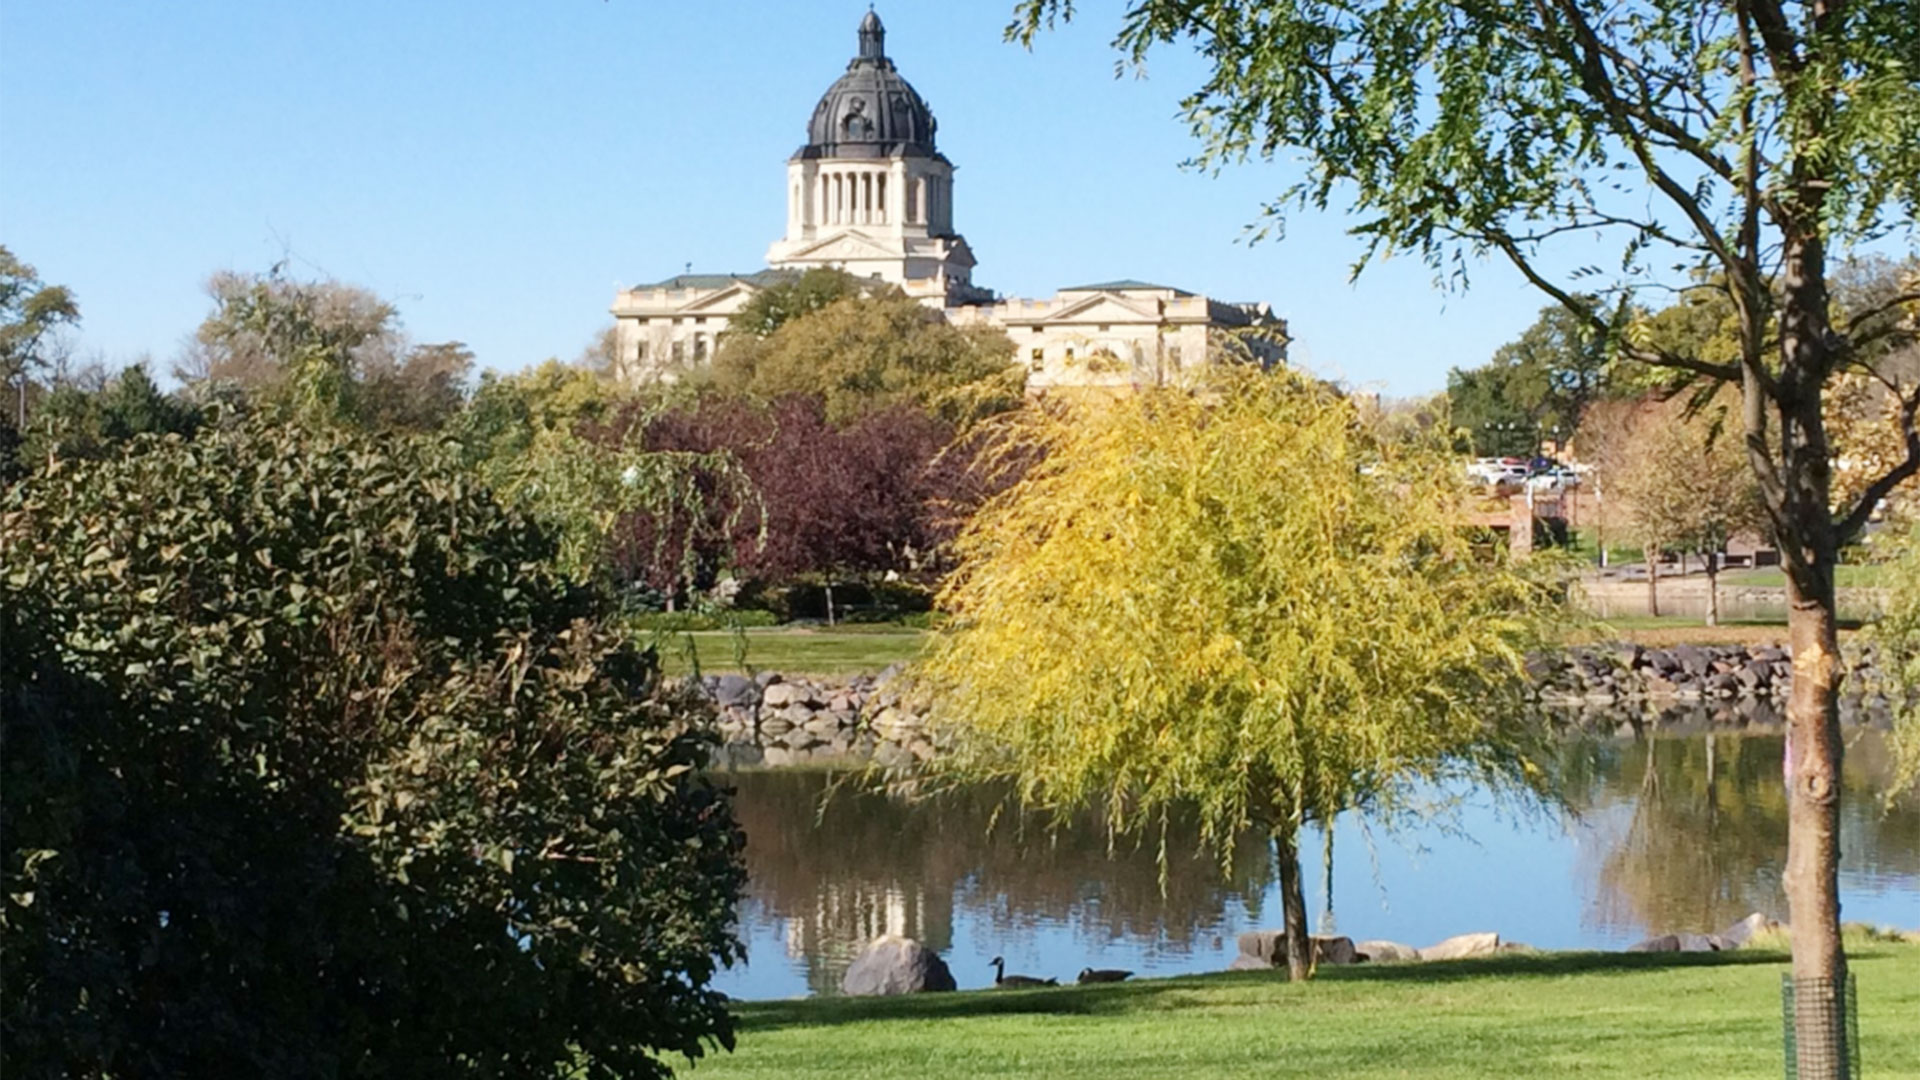 KELO Pierre capitol fall Daugaard statue location